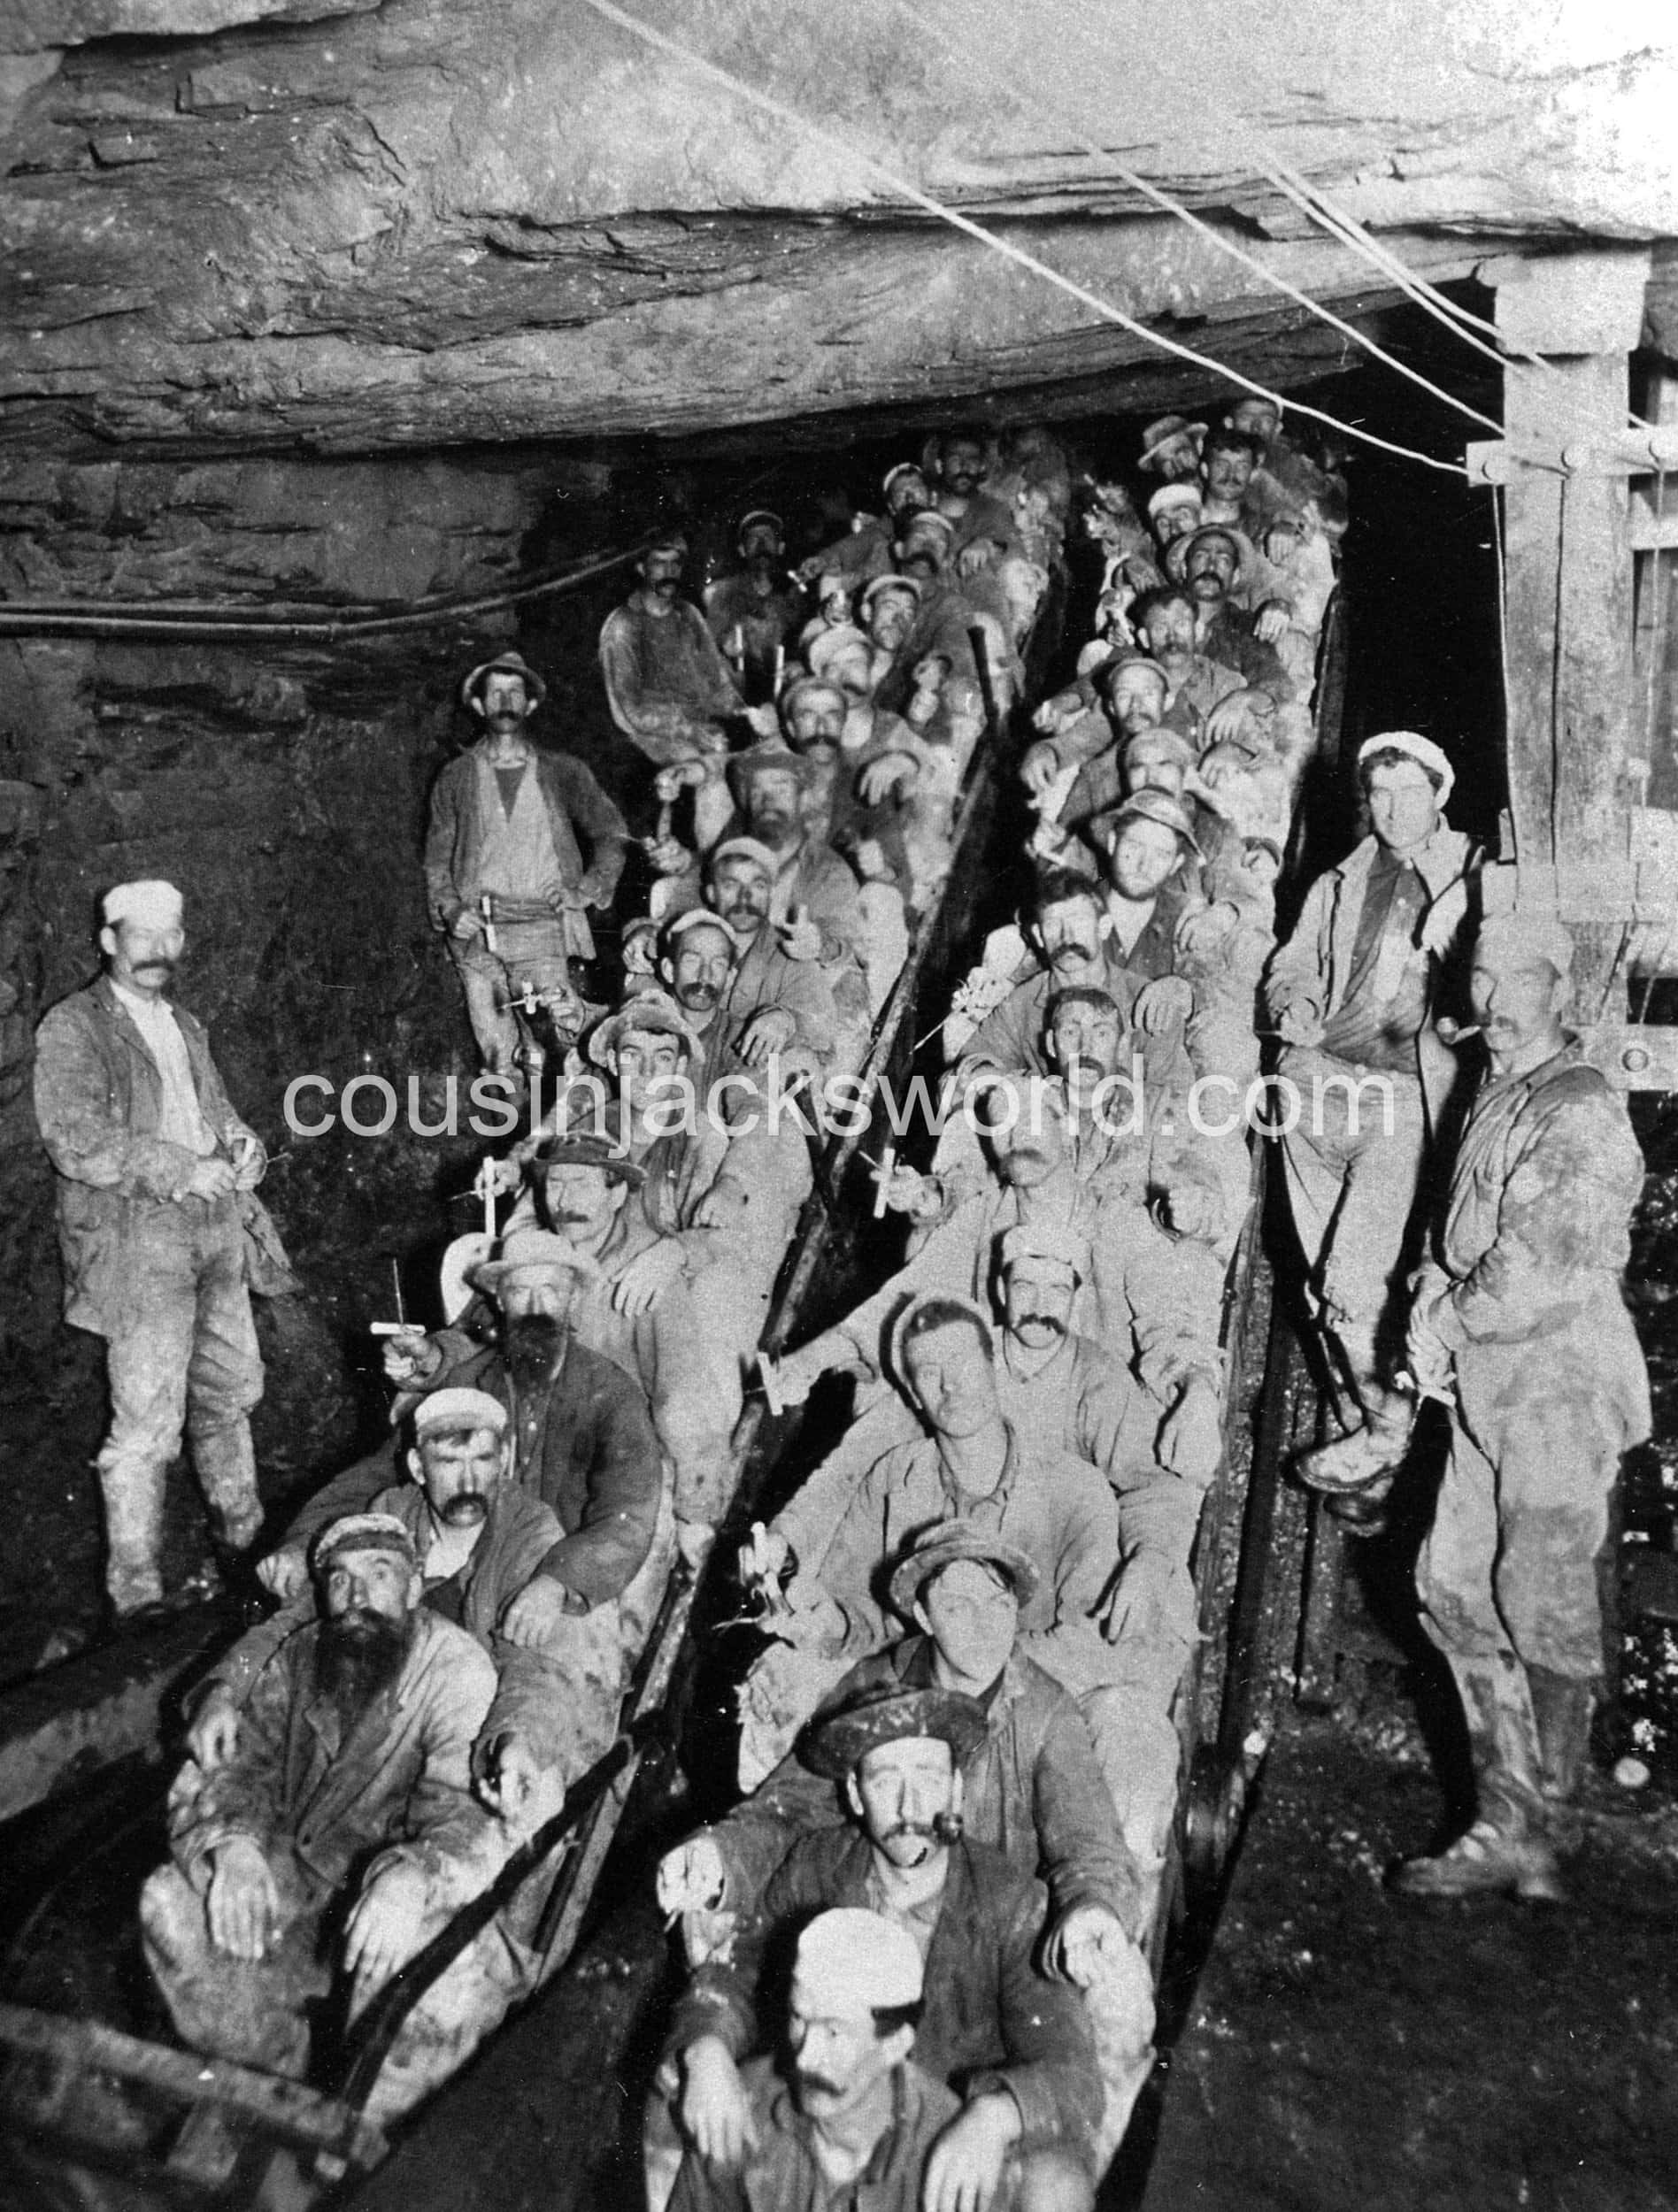 Empire Mine, Grass Valley, California. America's foremost town for Cornish mining migration